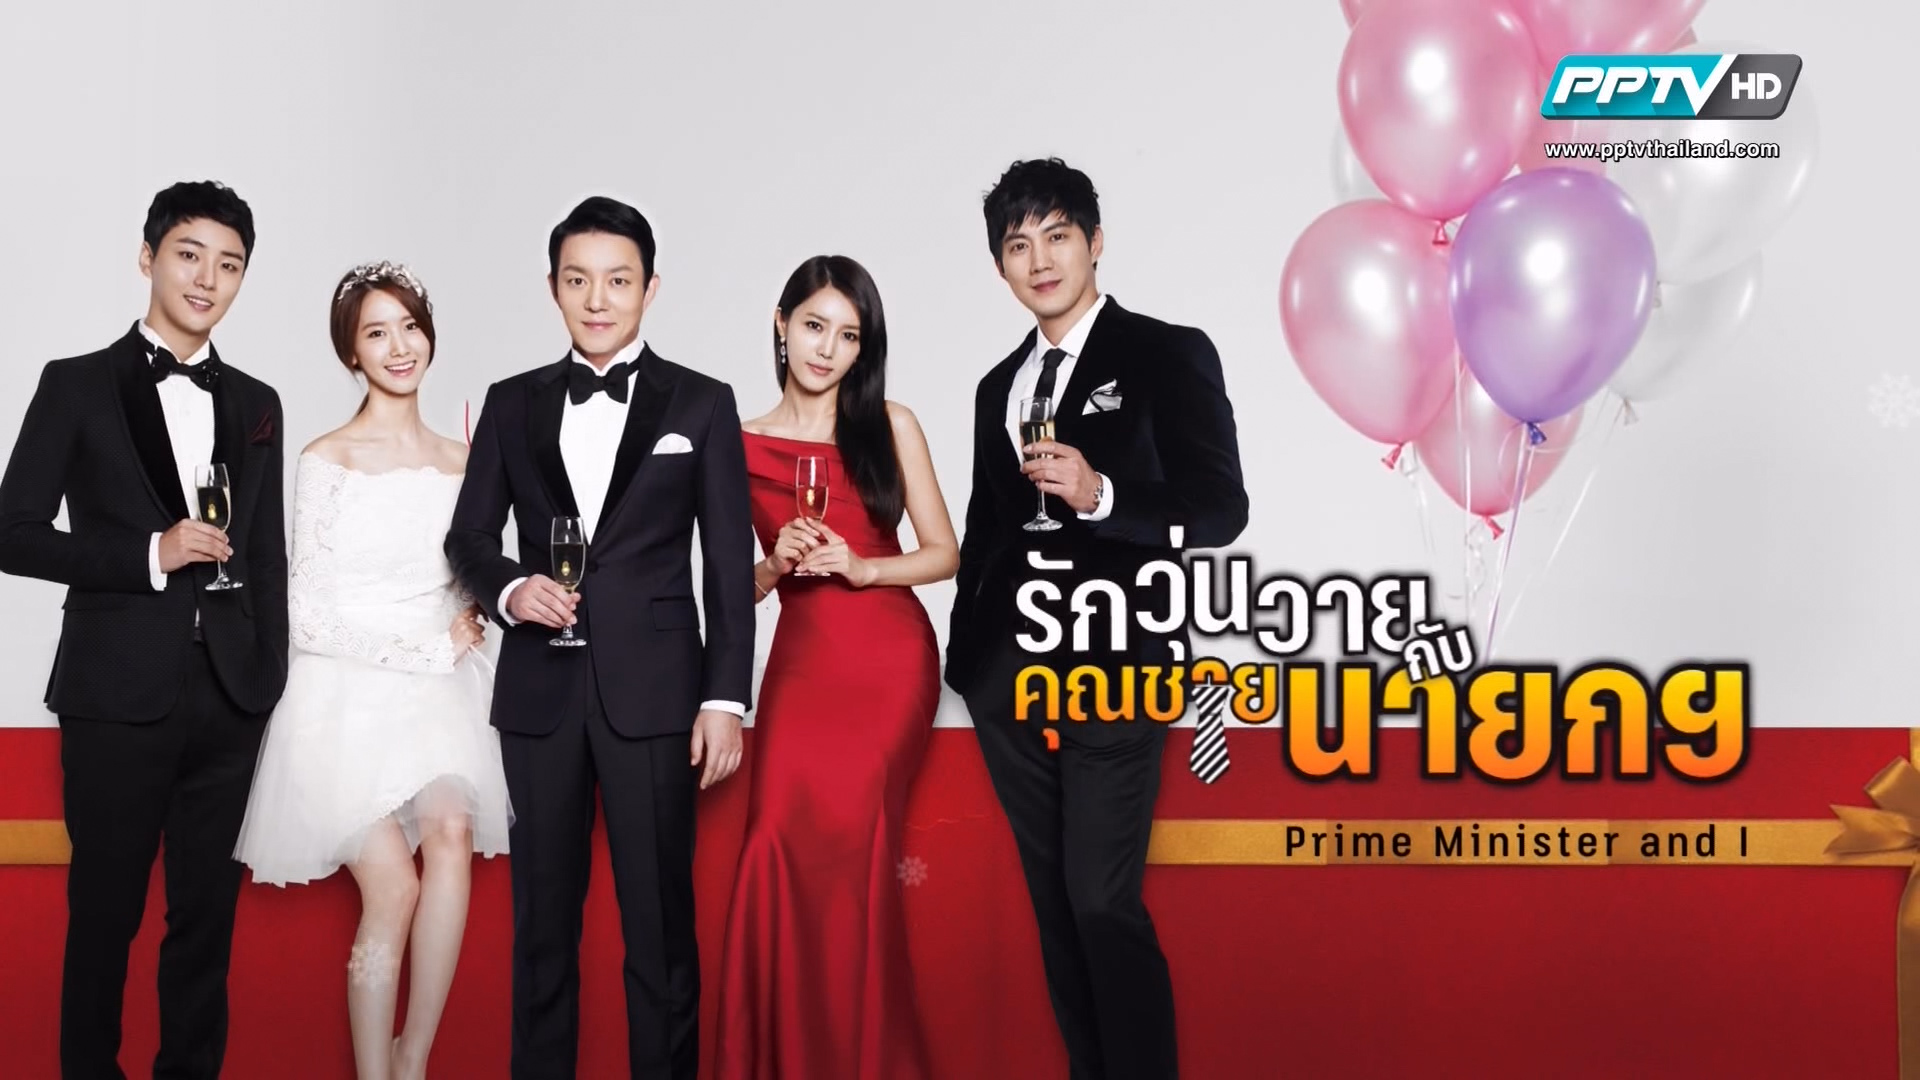 marriage without dating pantip